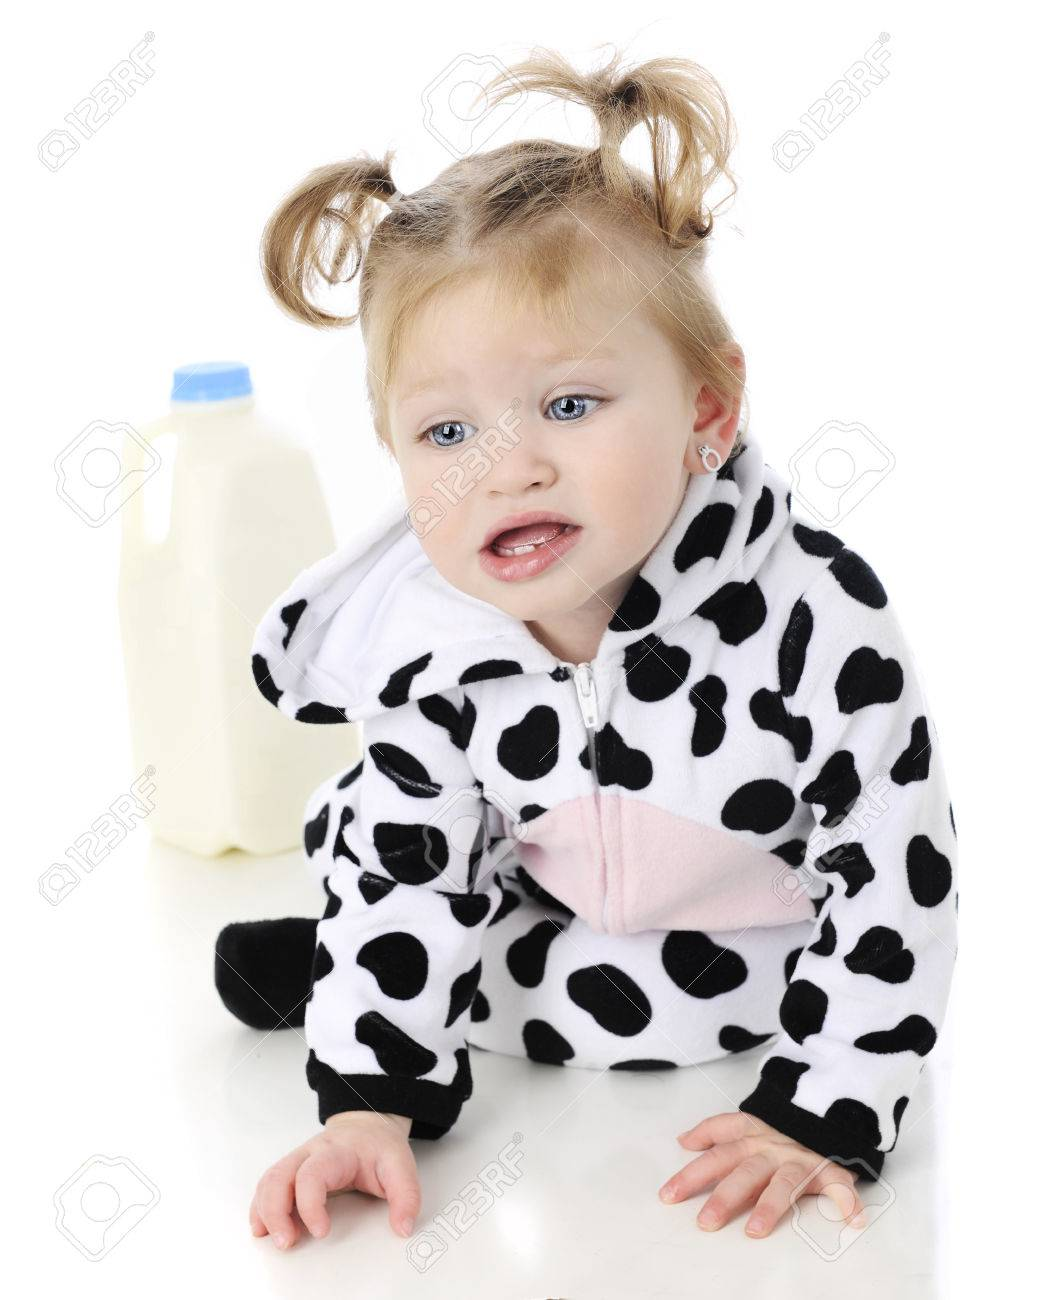 An adorable baby girl in a cow costume unhappily crawling away in from a half  sc 1 st  123RF.com & An Adorable Baby Girl In A Cow Costume Unhappily Crawling Away ...